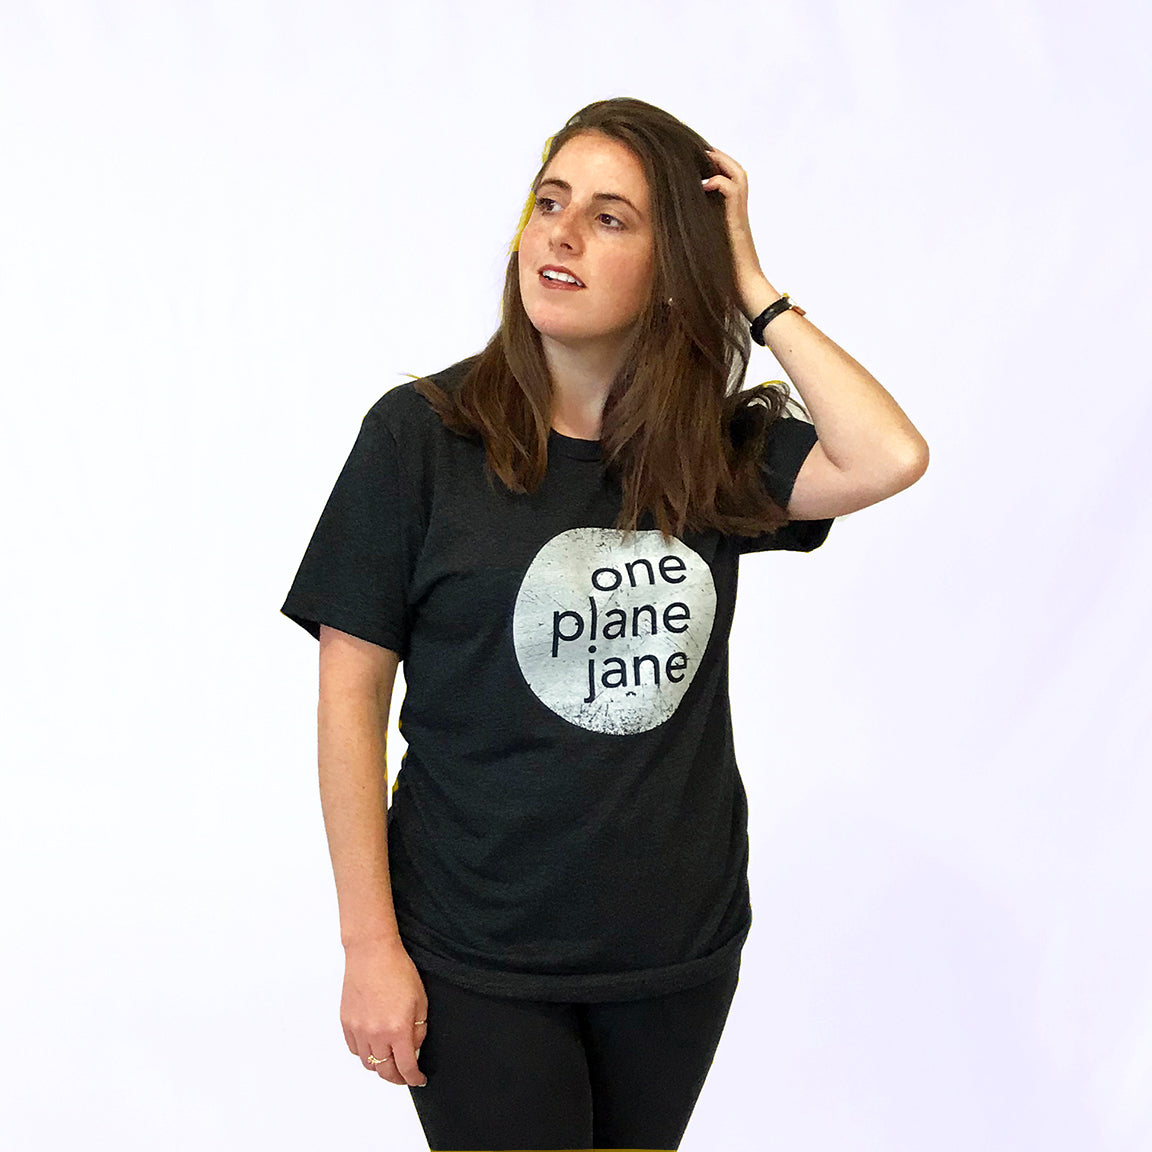 One Plane Jane Unisex logo tee t-shirt.  Show in black with a large white One Plane Jane logo